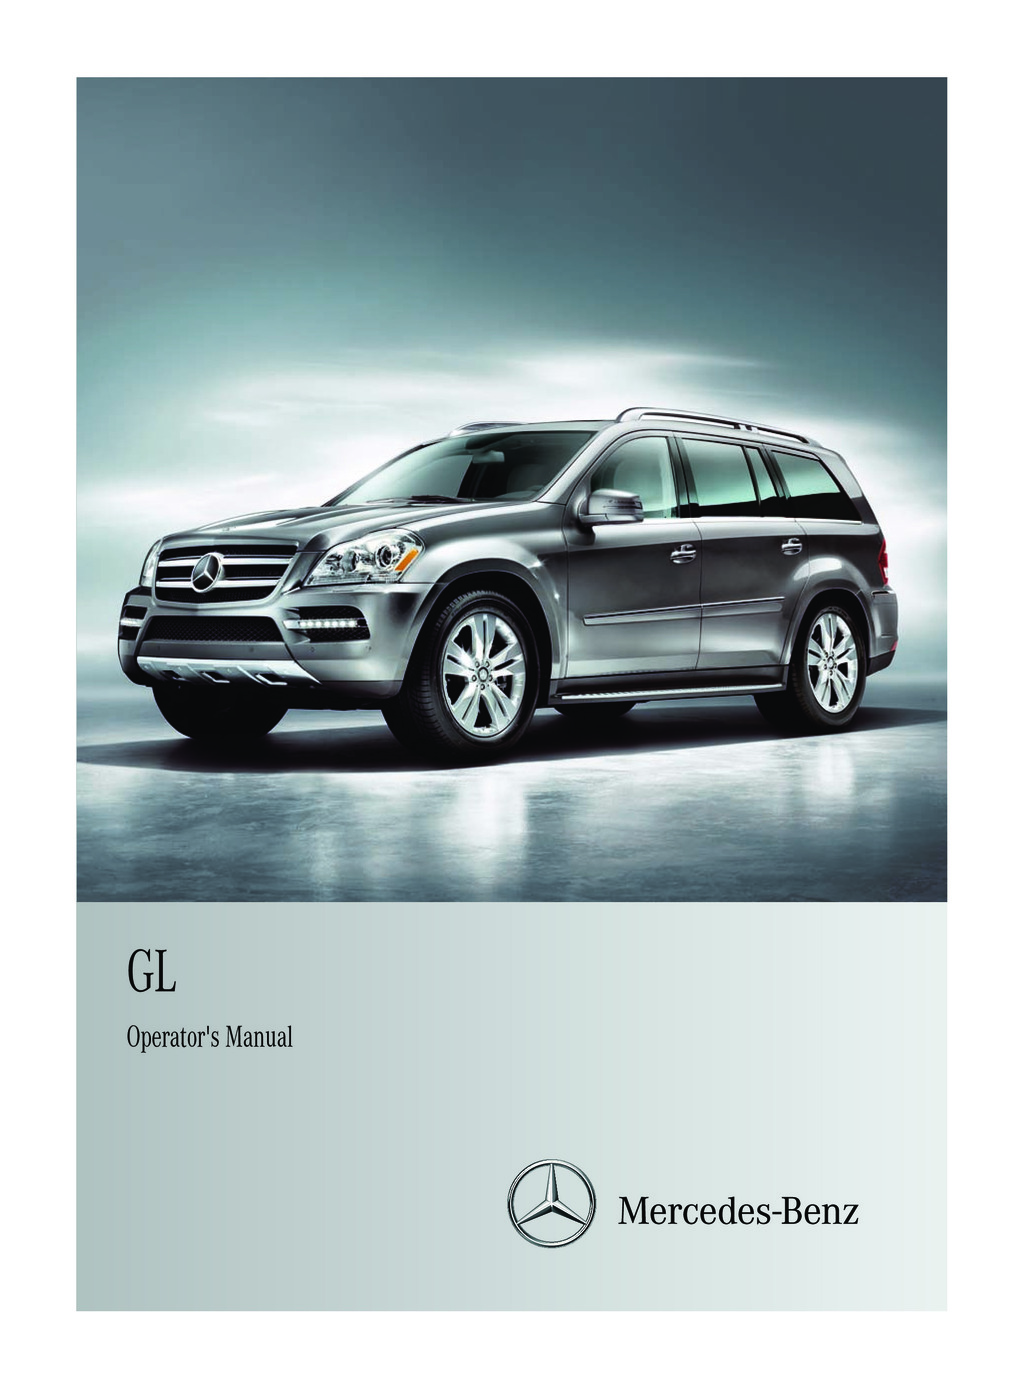 2012 Mercedes-Benz GL owners manual